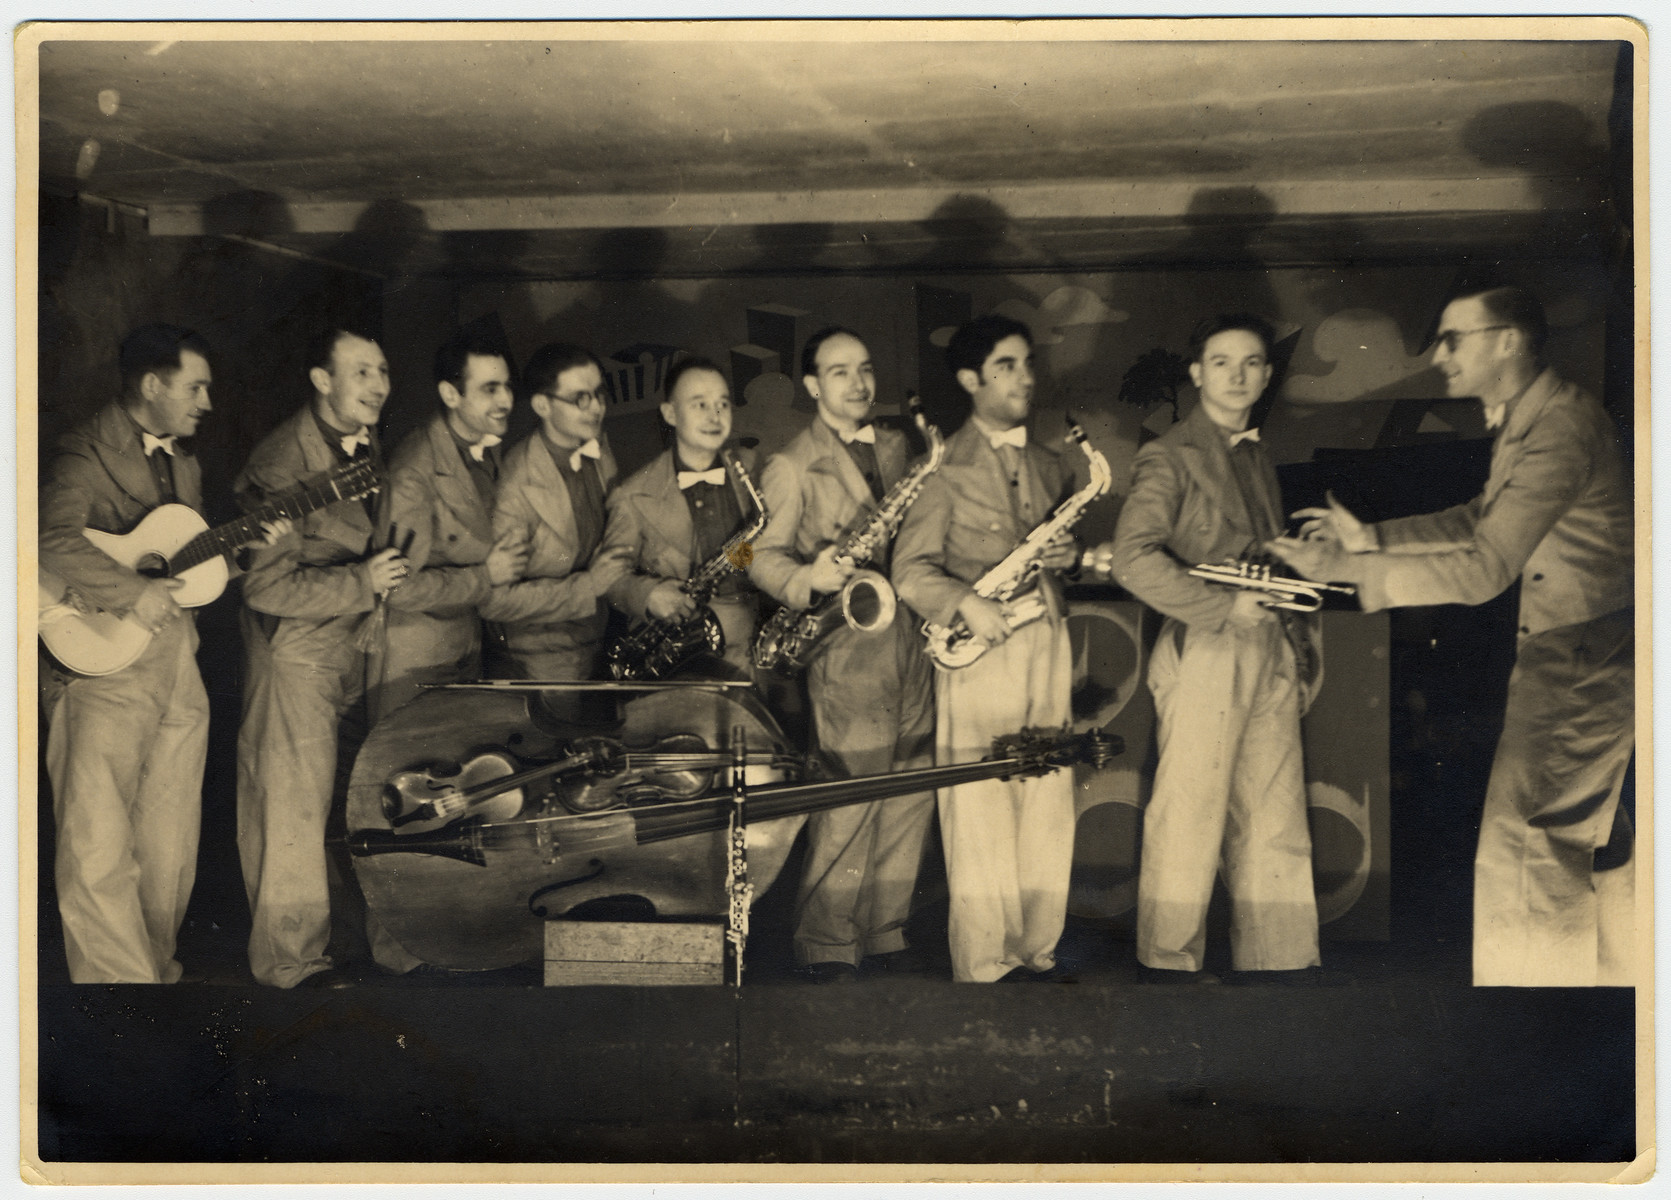 Performance of the prisoner tango orchestra in Stalag VIIIA.